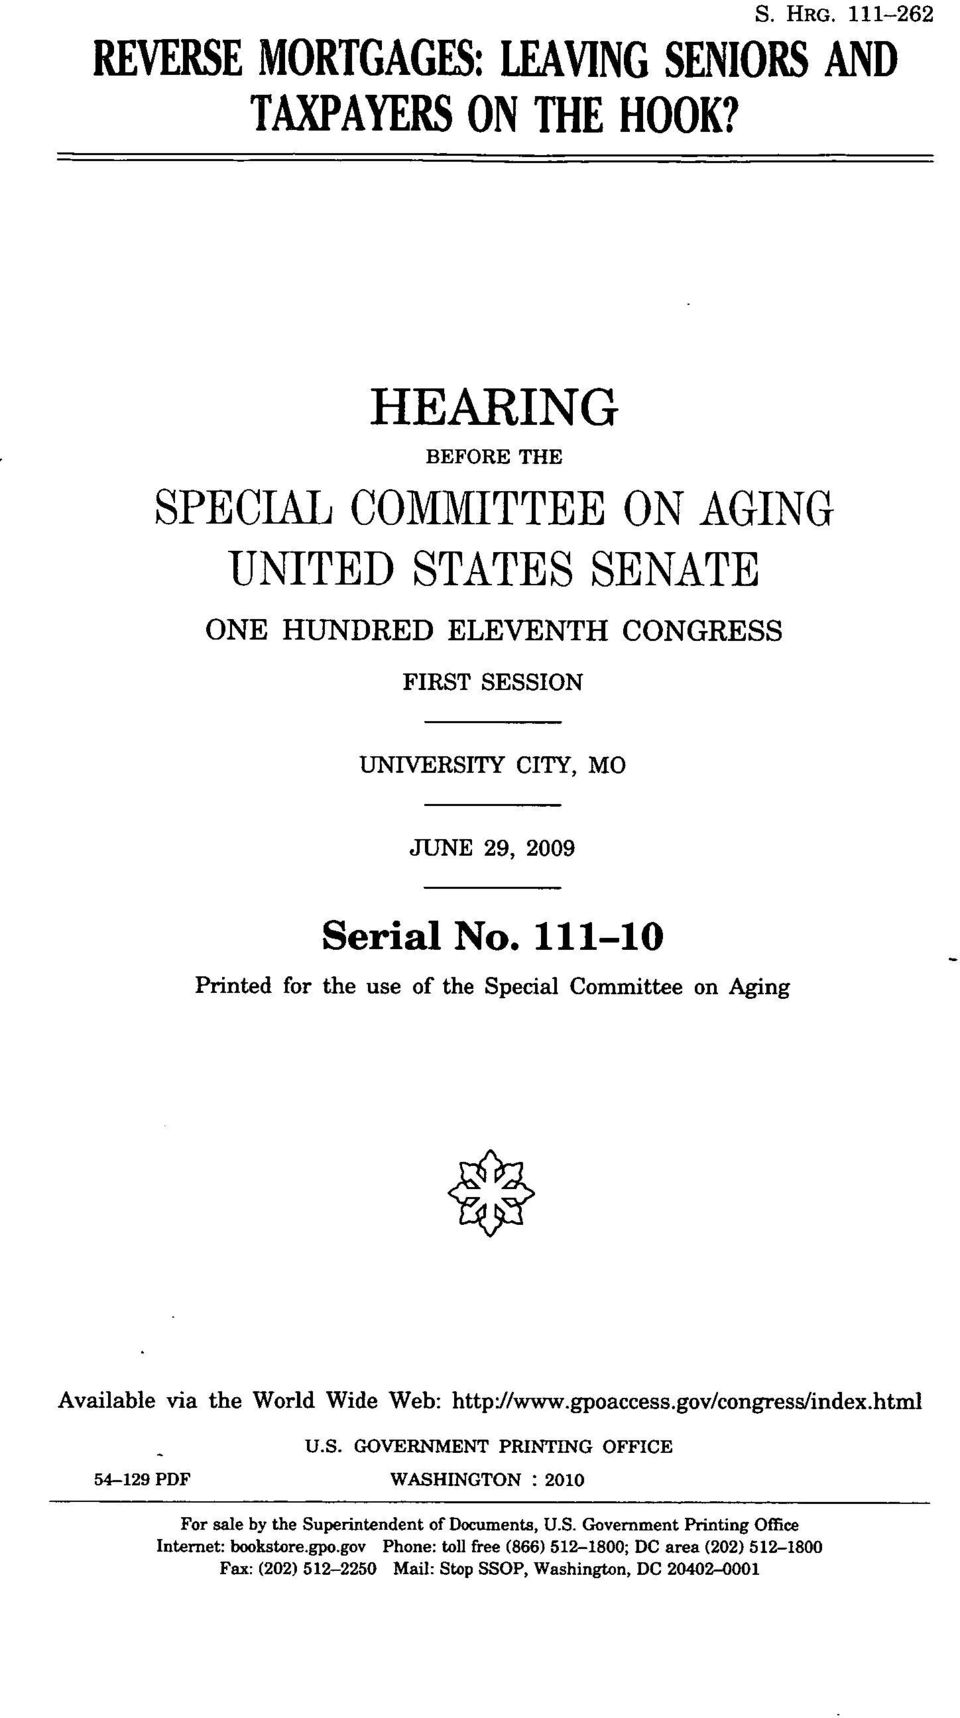 111-10 Printed for the use of the Special Committee on Aging Available via the World Wide Web: http://www.gpoaccess.gov/congress/index.html U.S. GOVERNMENT PRINTING OFFICE 54-129 PDF WASHINGTON : 2010 For sale by the Superintendent of Documents, U.